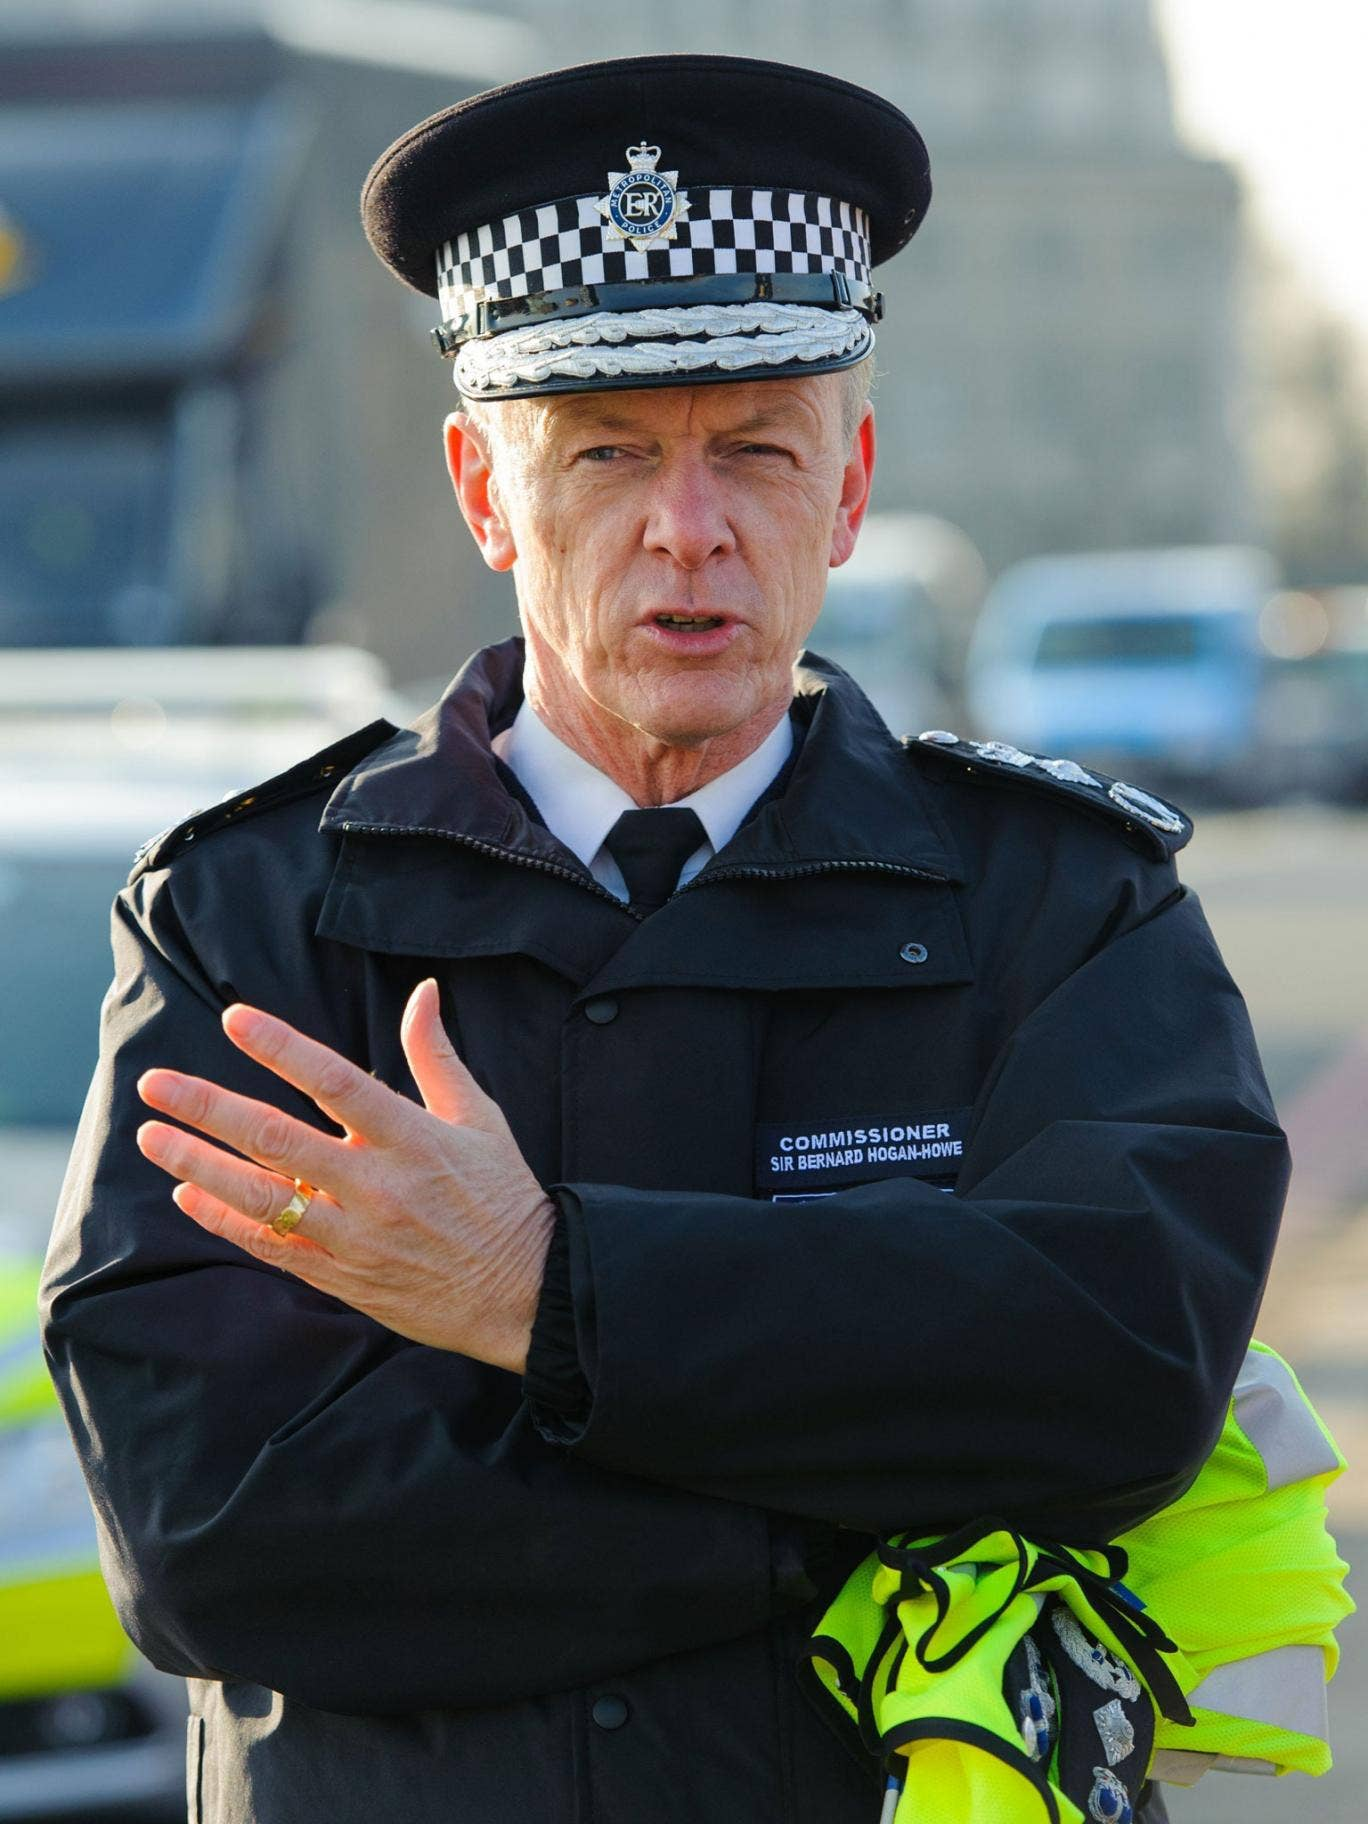 Sir Bernard Hogan-Howe, Britain's most senior police officer, could be investigated for his role in the aftermath of the Hillsborough football disaster